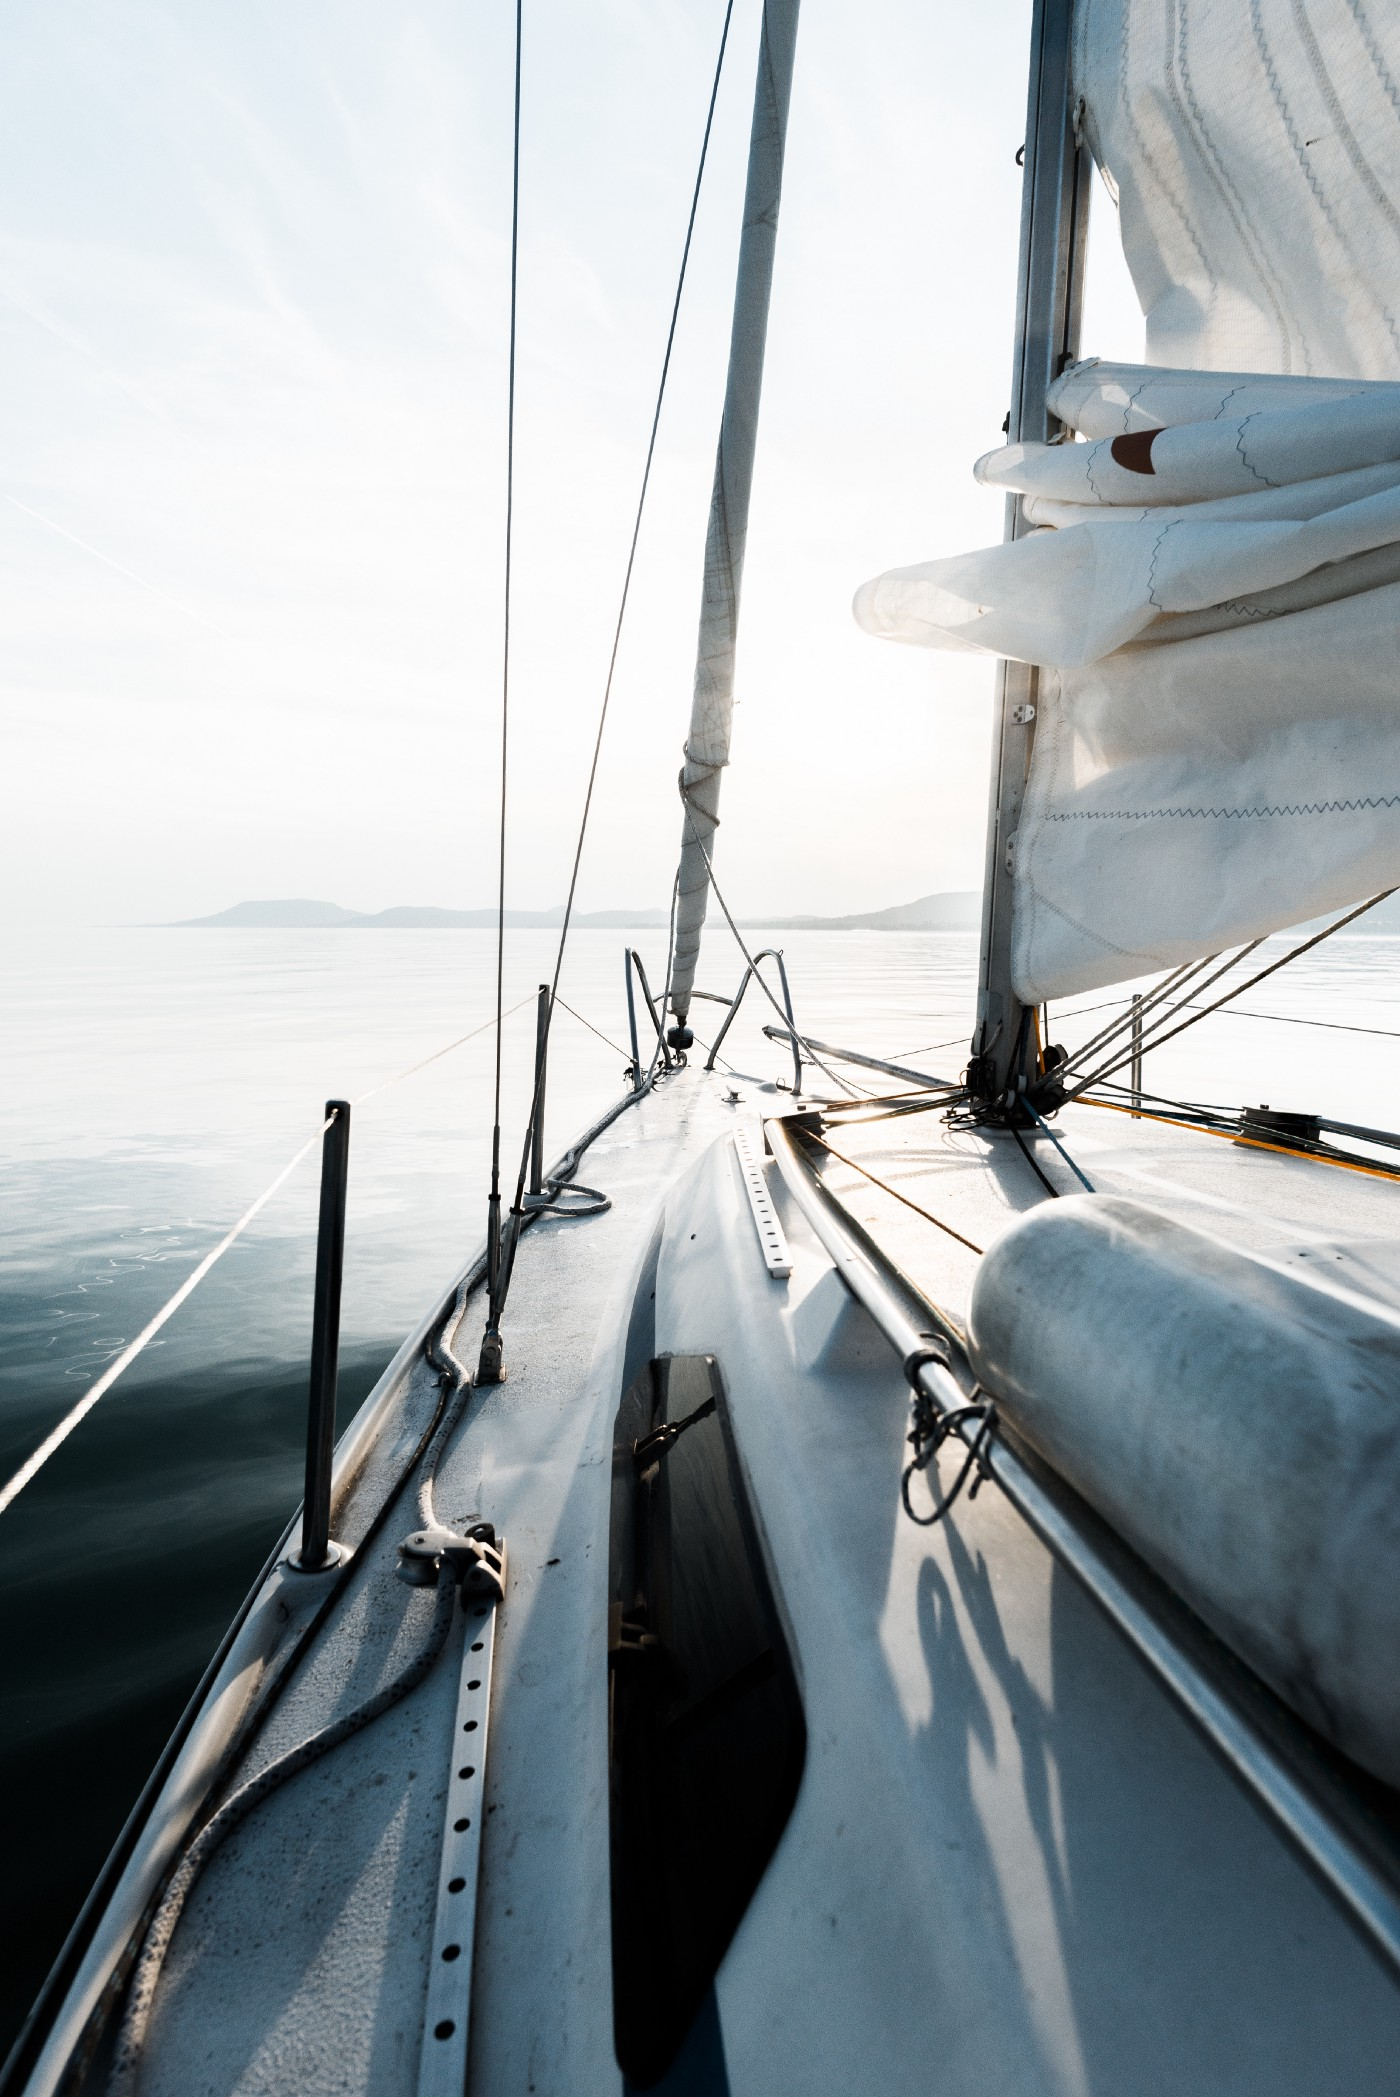 Looking out into the water from a sail boat.